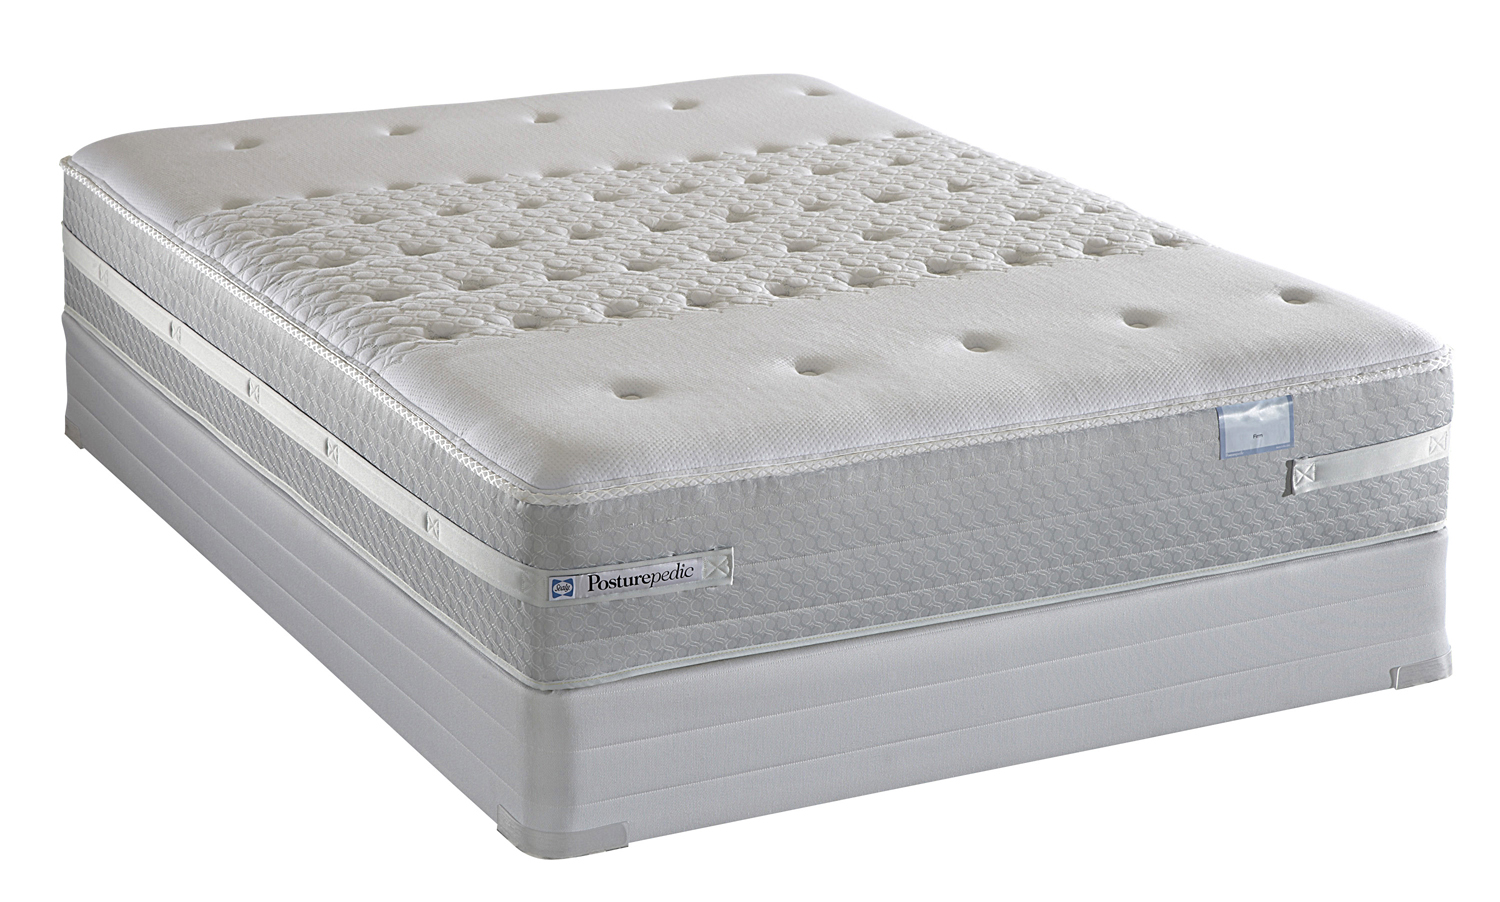 Sealy Posturepedic Firm Mattress